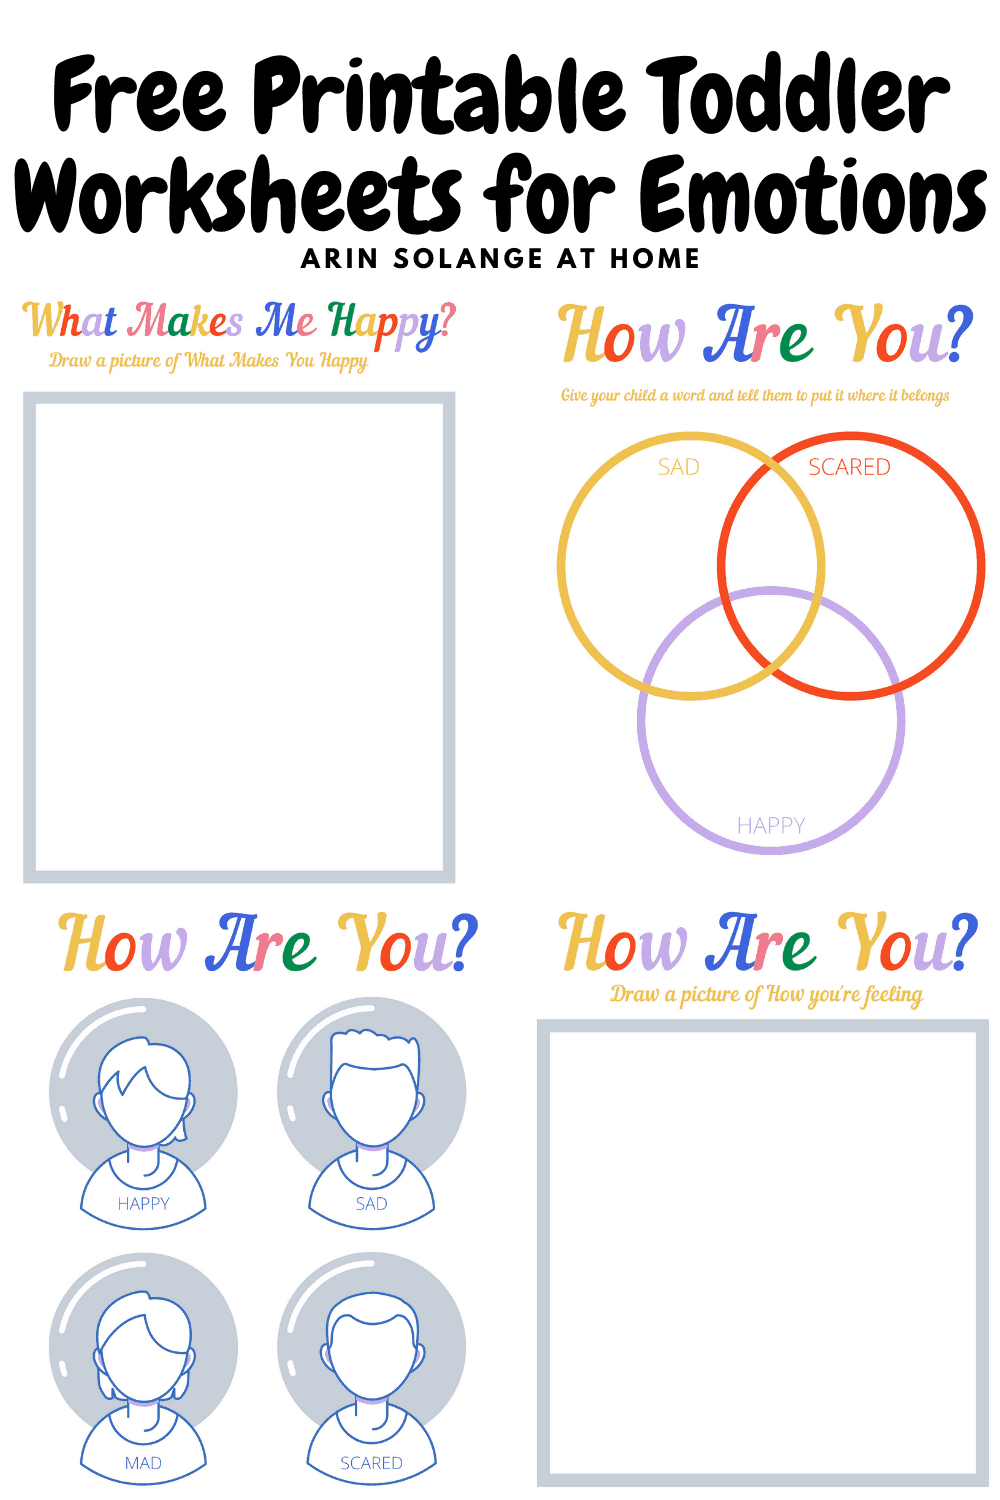 - Free Printable Toddler Worksheets For Emotions - Arinsolangeathome